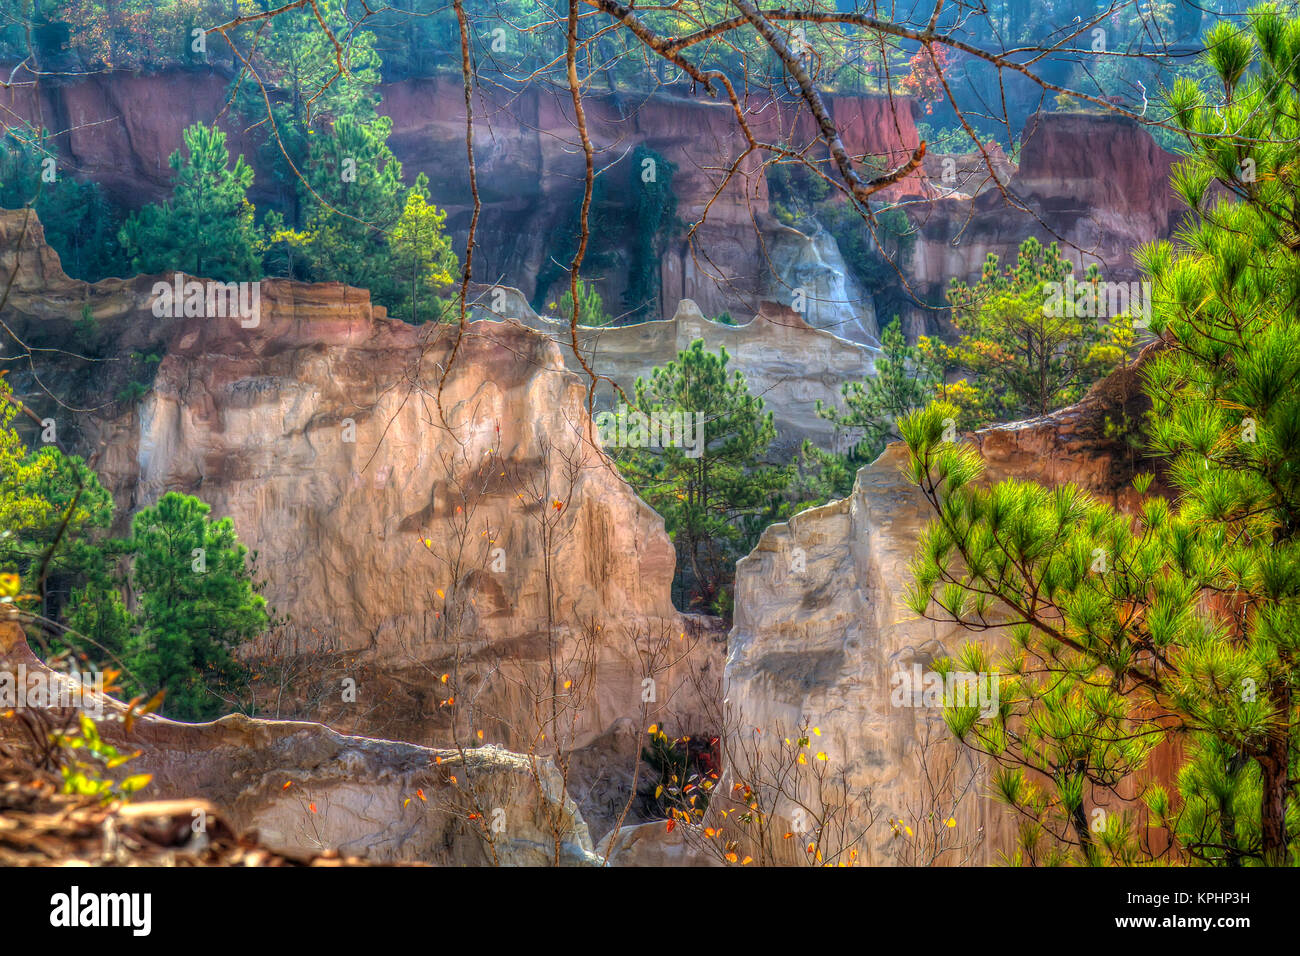 Red clay providence canyon in stock photos red clay providence providence canyon in georgia usa stock image publicscrutiny Image collections